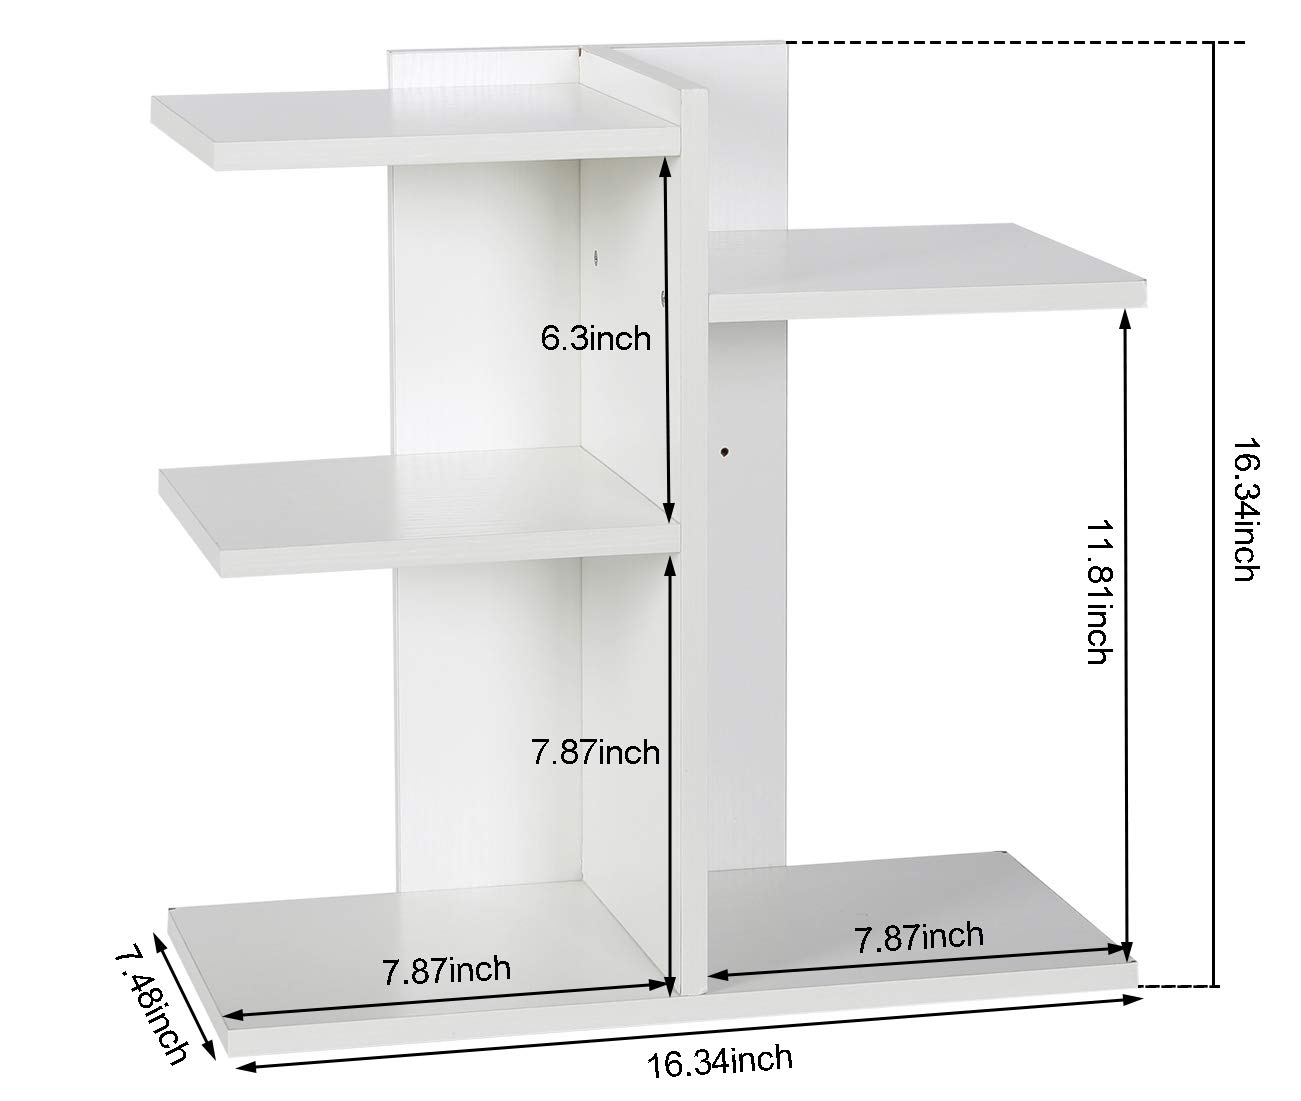 PAG Wood Desktop Bookshelf Assembled Countertop Bookcase Literature Holder Accessories Display Rack Office Supplies Desk Organizer, White by PAG (Image #4)